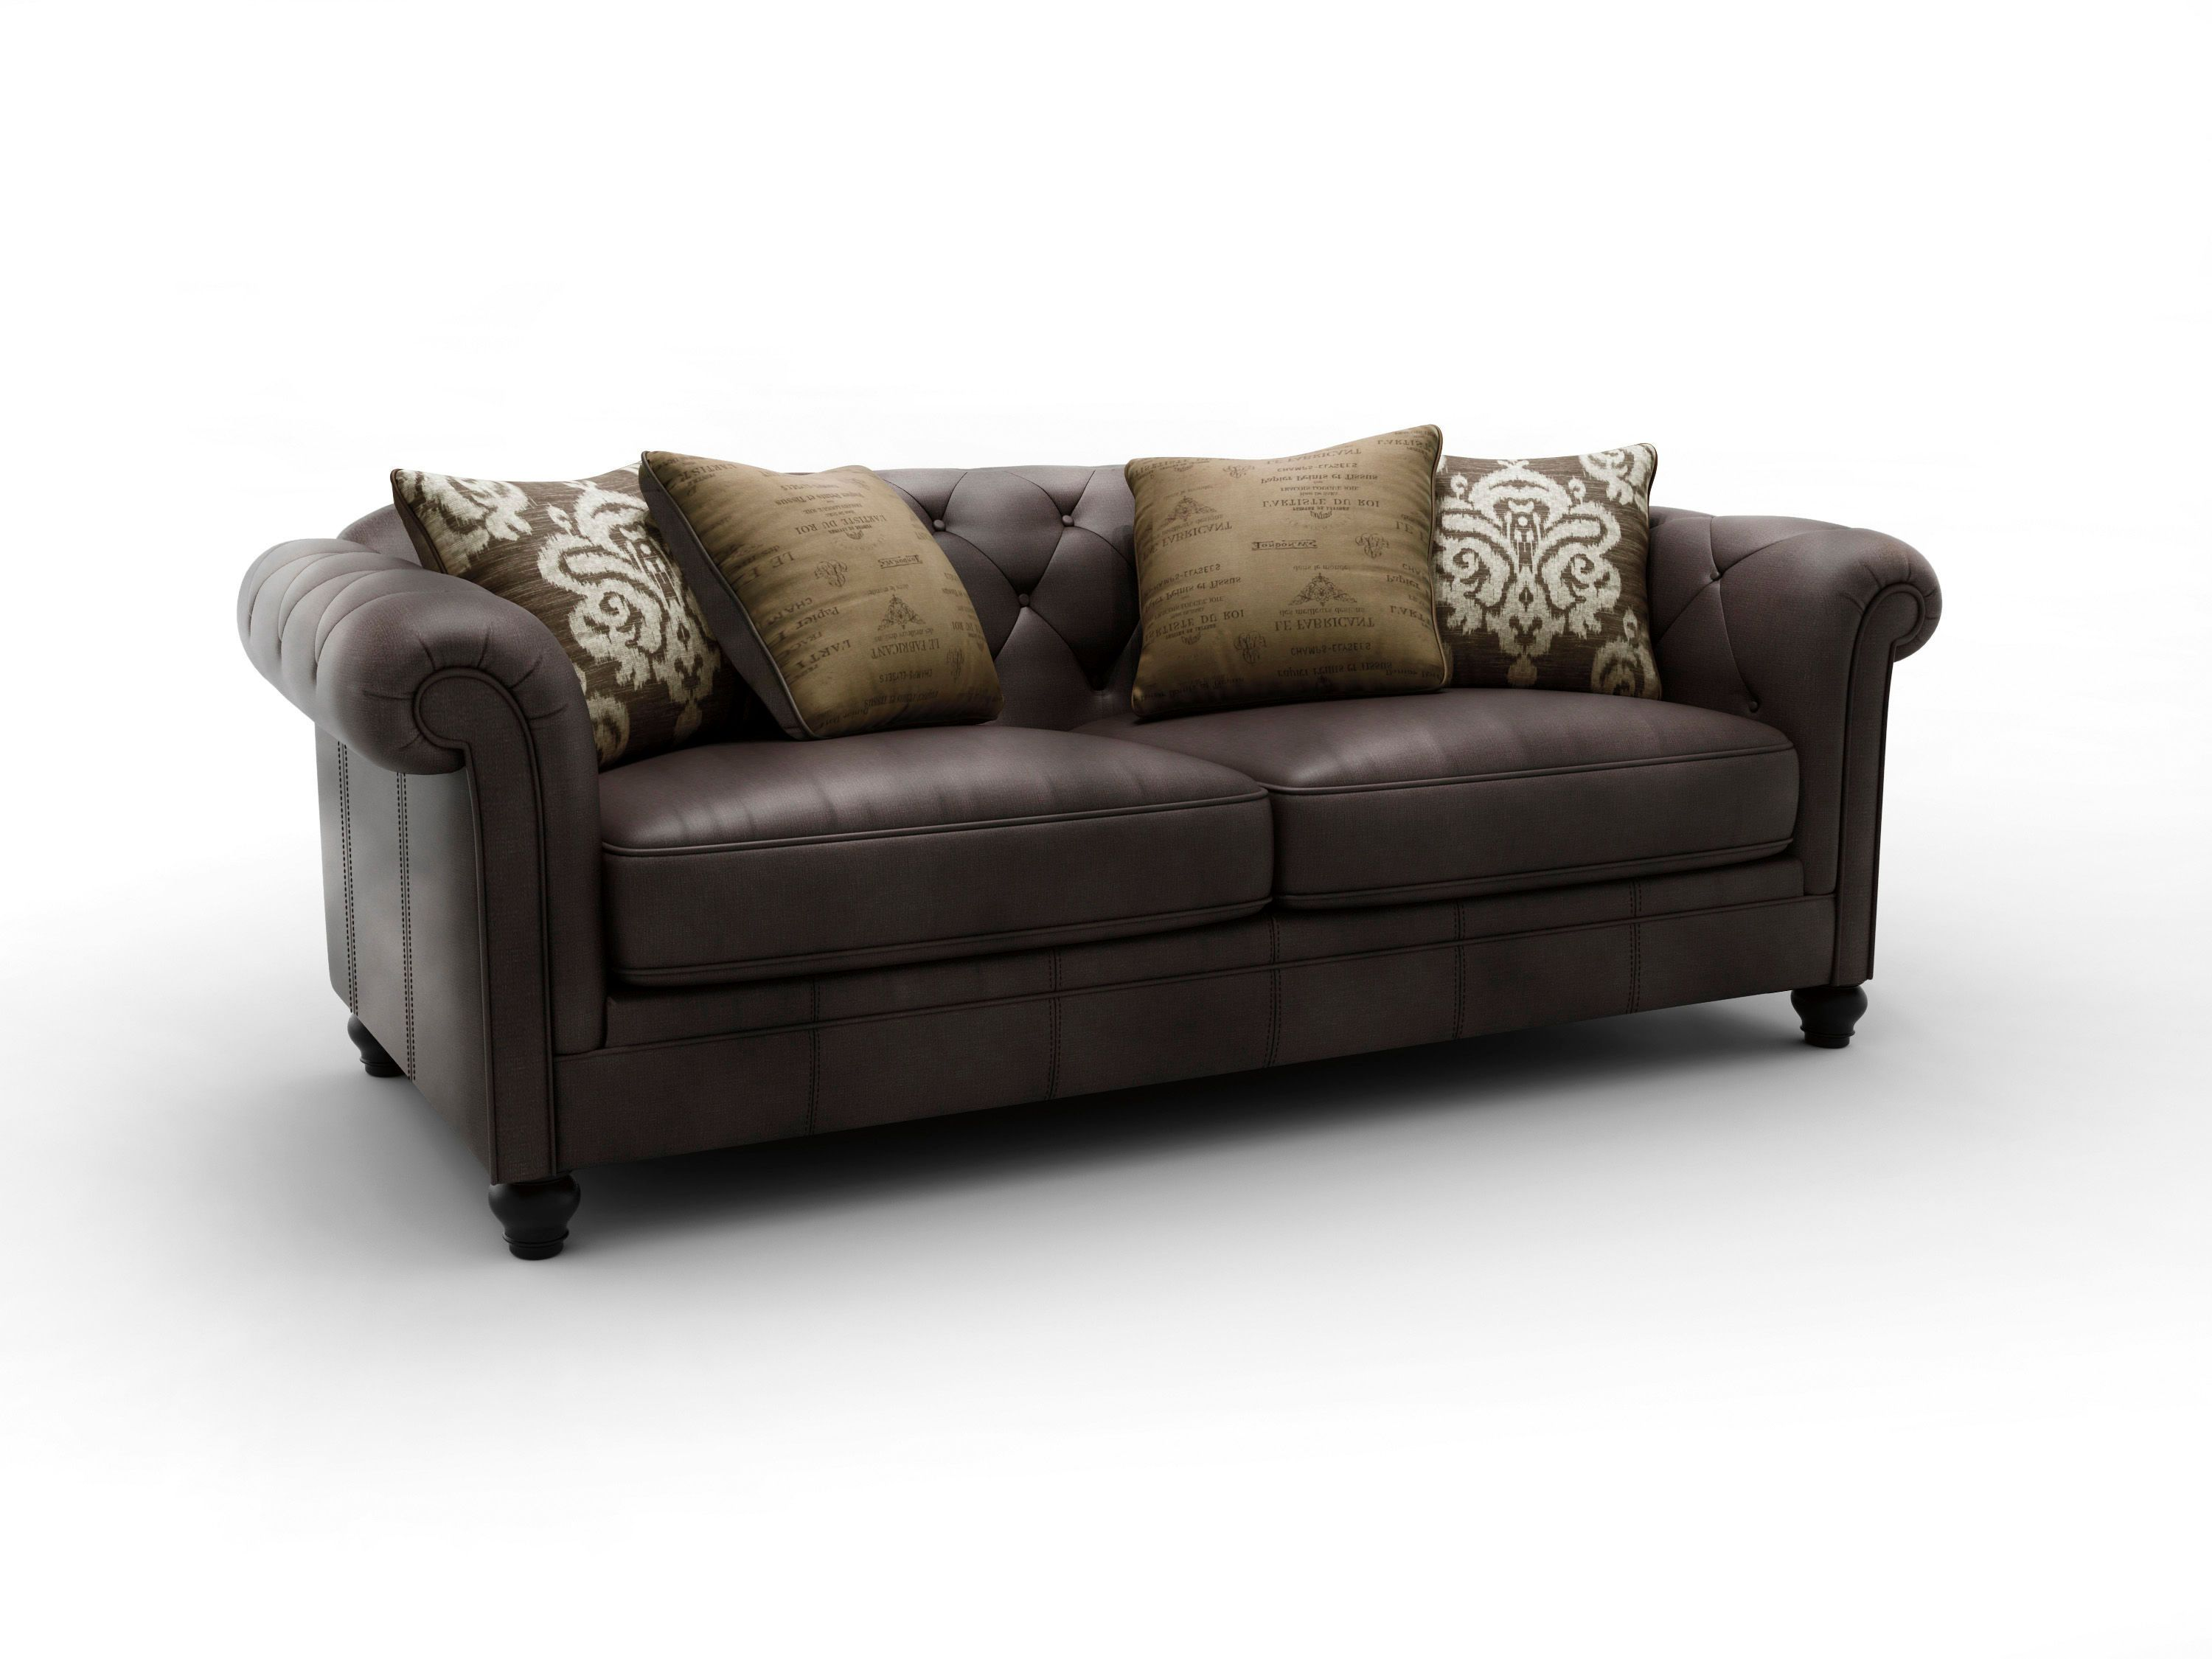 Marvelous Signature Design By Ashley Living Room D Sofa 3290138   Furniture Showcase    Stillwater, OK